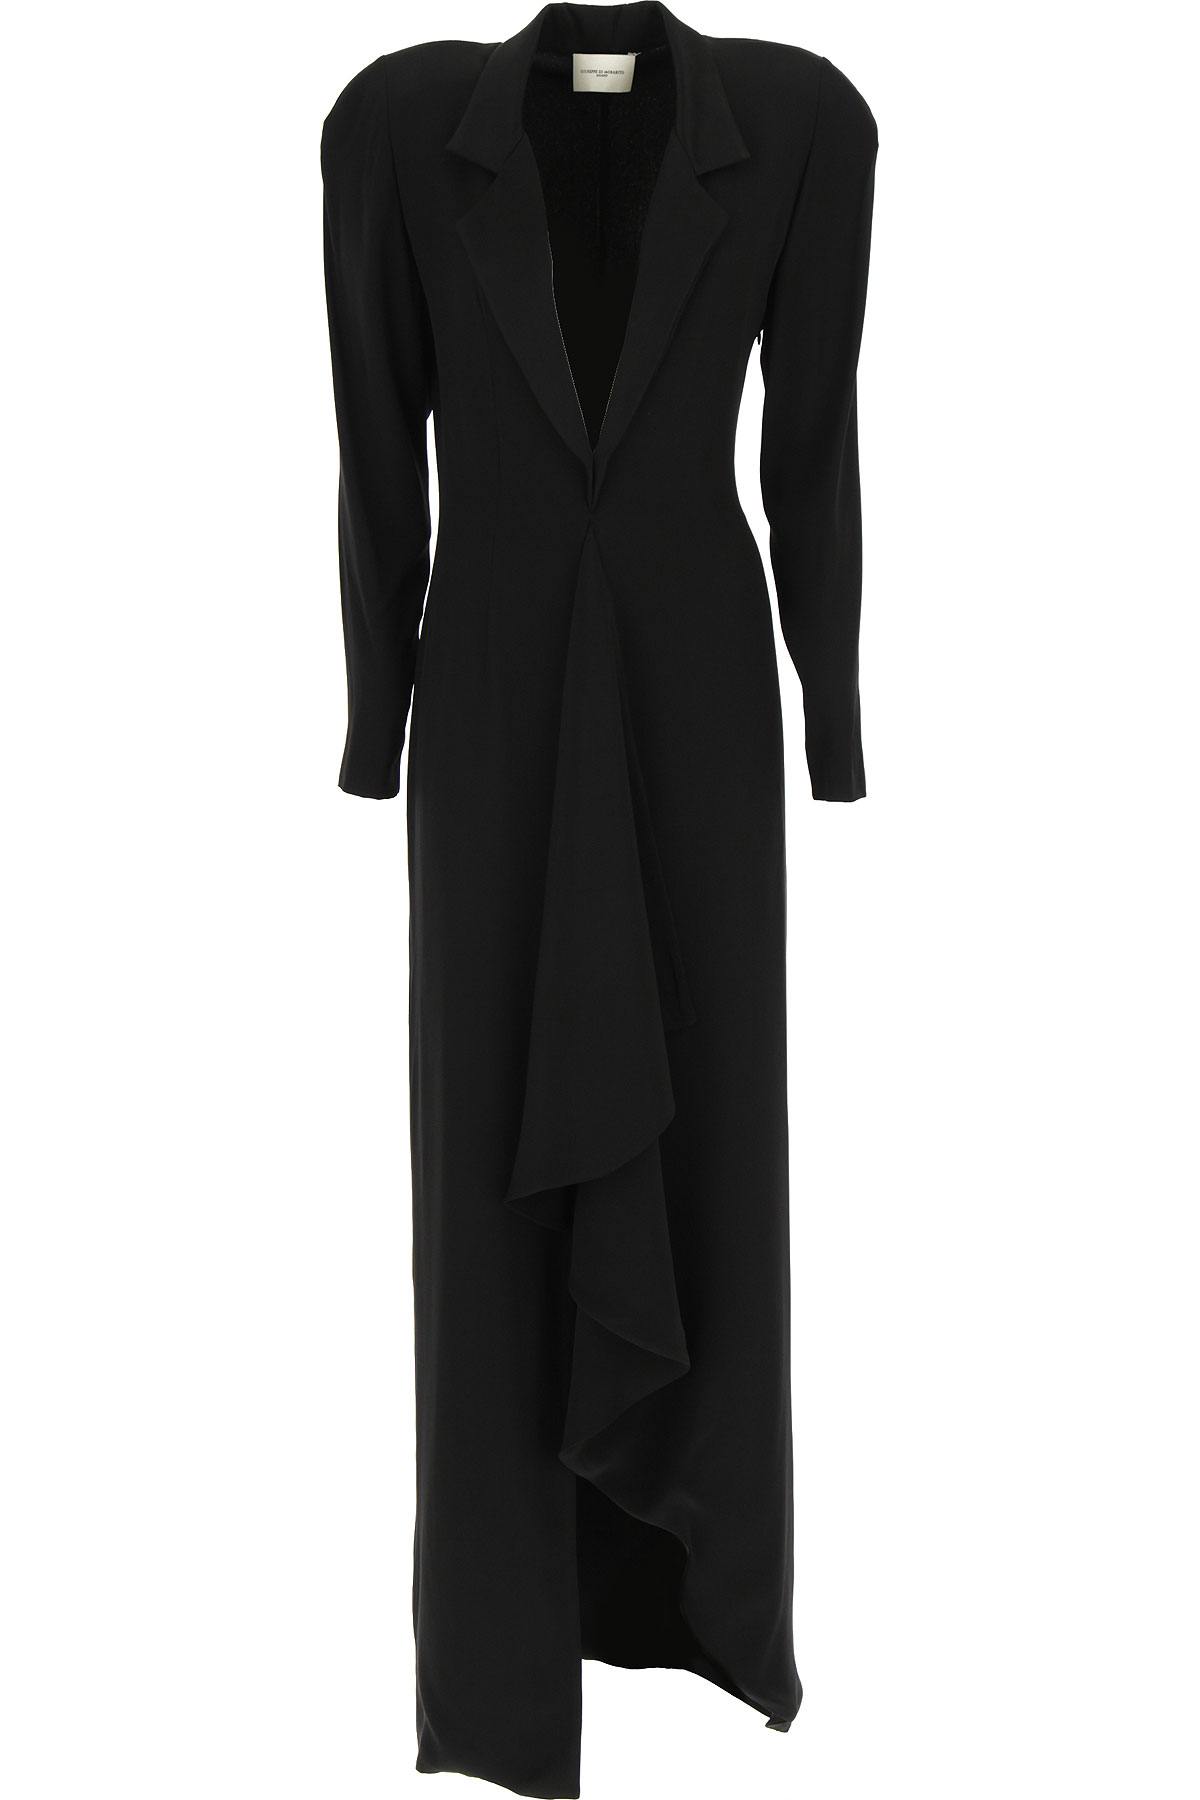 Giuseppe Di Morabito Dress for Women, Evening Cocktail Party On Sale, Black, Acrylic, 2019, 4 6 8